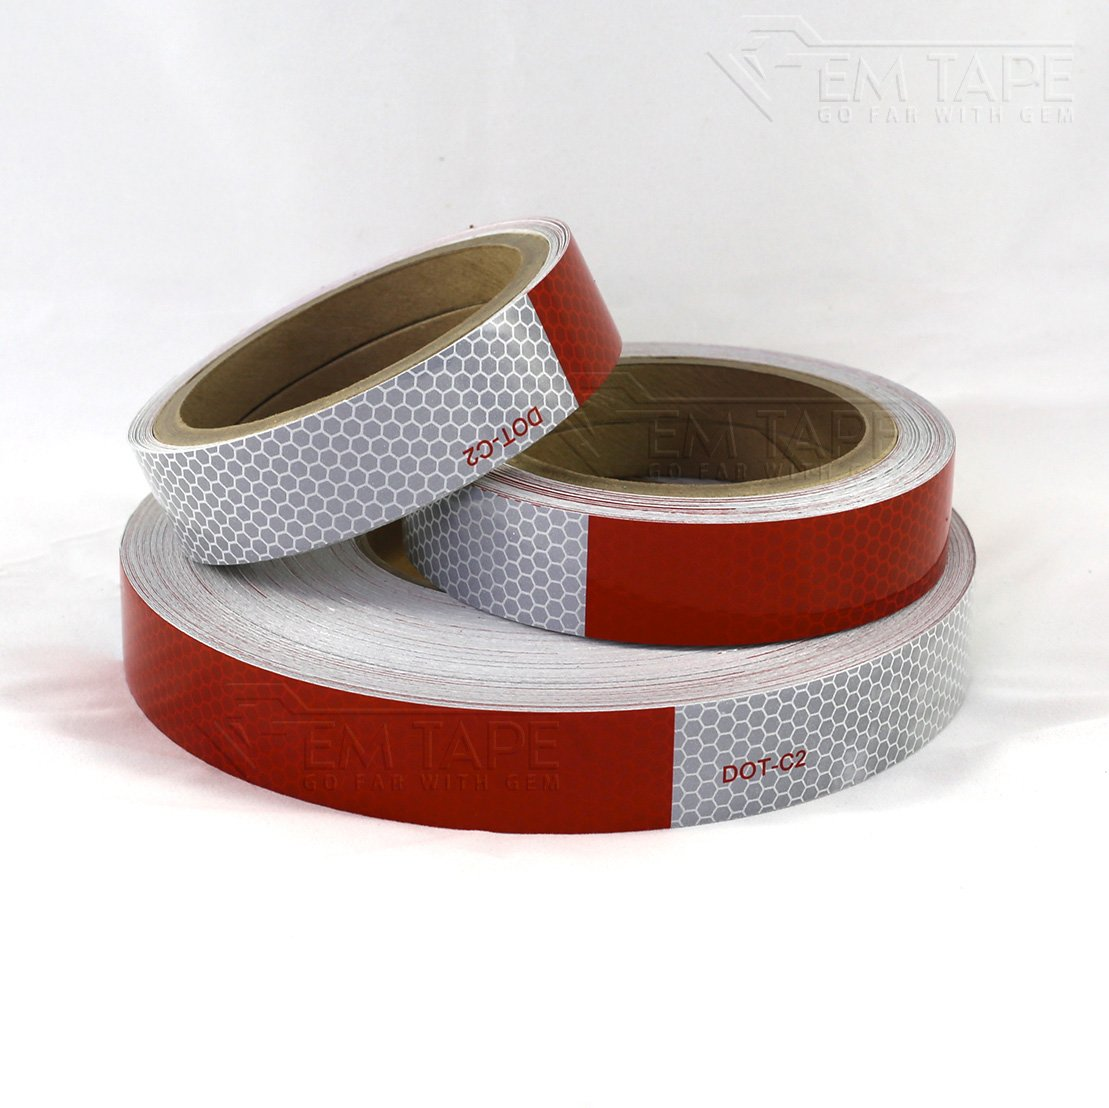 Gem Tape 1 in. Wide Red and White Honeycomb High-Intensity Reflective Conspicuity Tape for Low Light Safety (1 in. X 30 Ft, Red 6 in./White 6 in. Repeating)